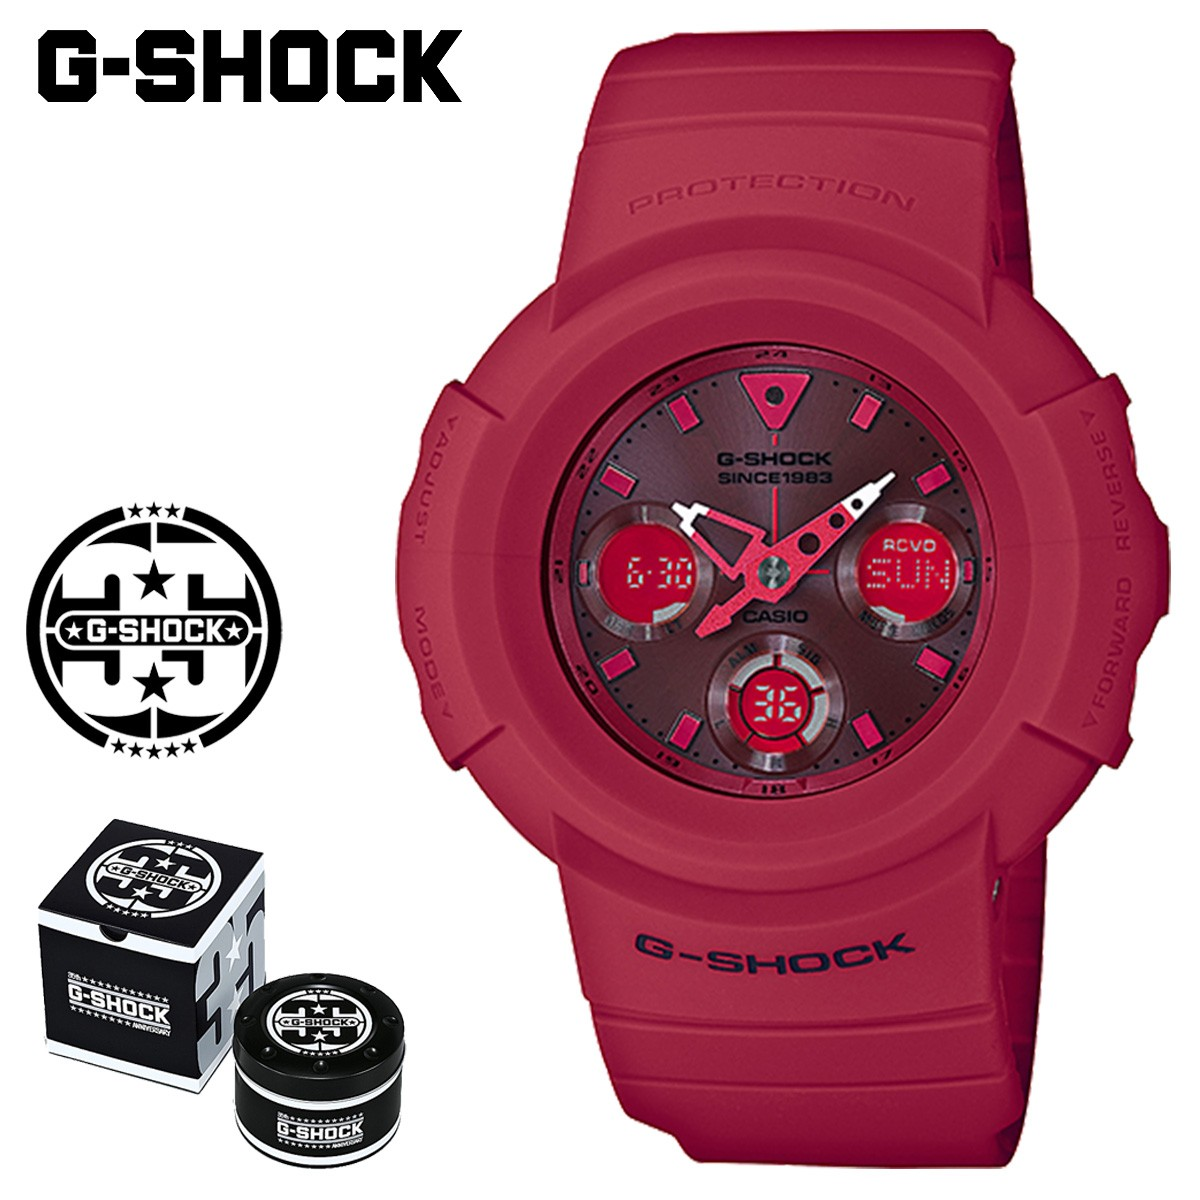 【SOLD OUT】 カシオ CASIO G-SHOCK 腕時計 AWG-M535C-4AJR RED OUT 35周年 ジーショック Gショック G-ショック レッド メンズ レディース [1/19 新入荷]